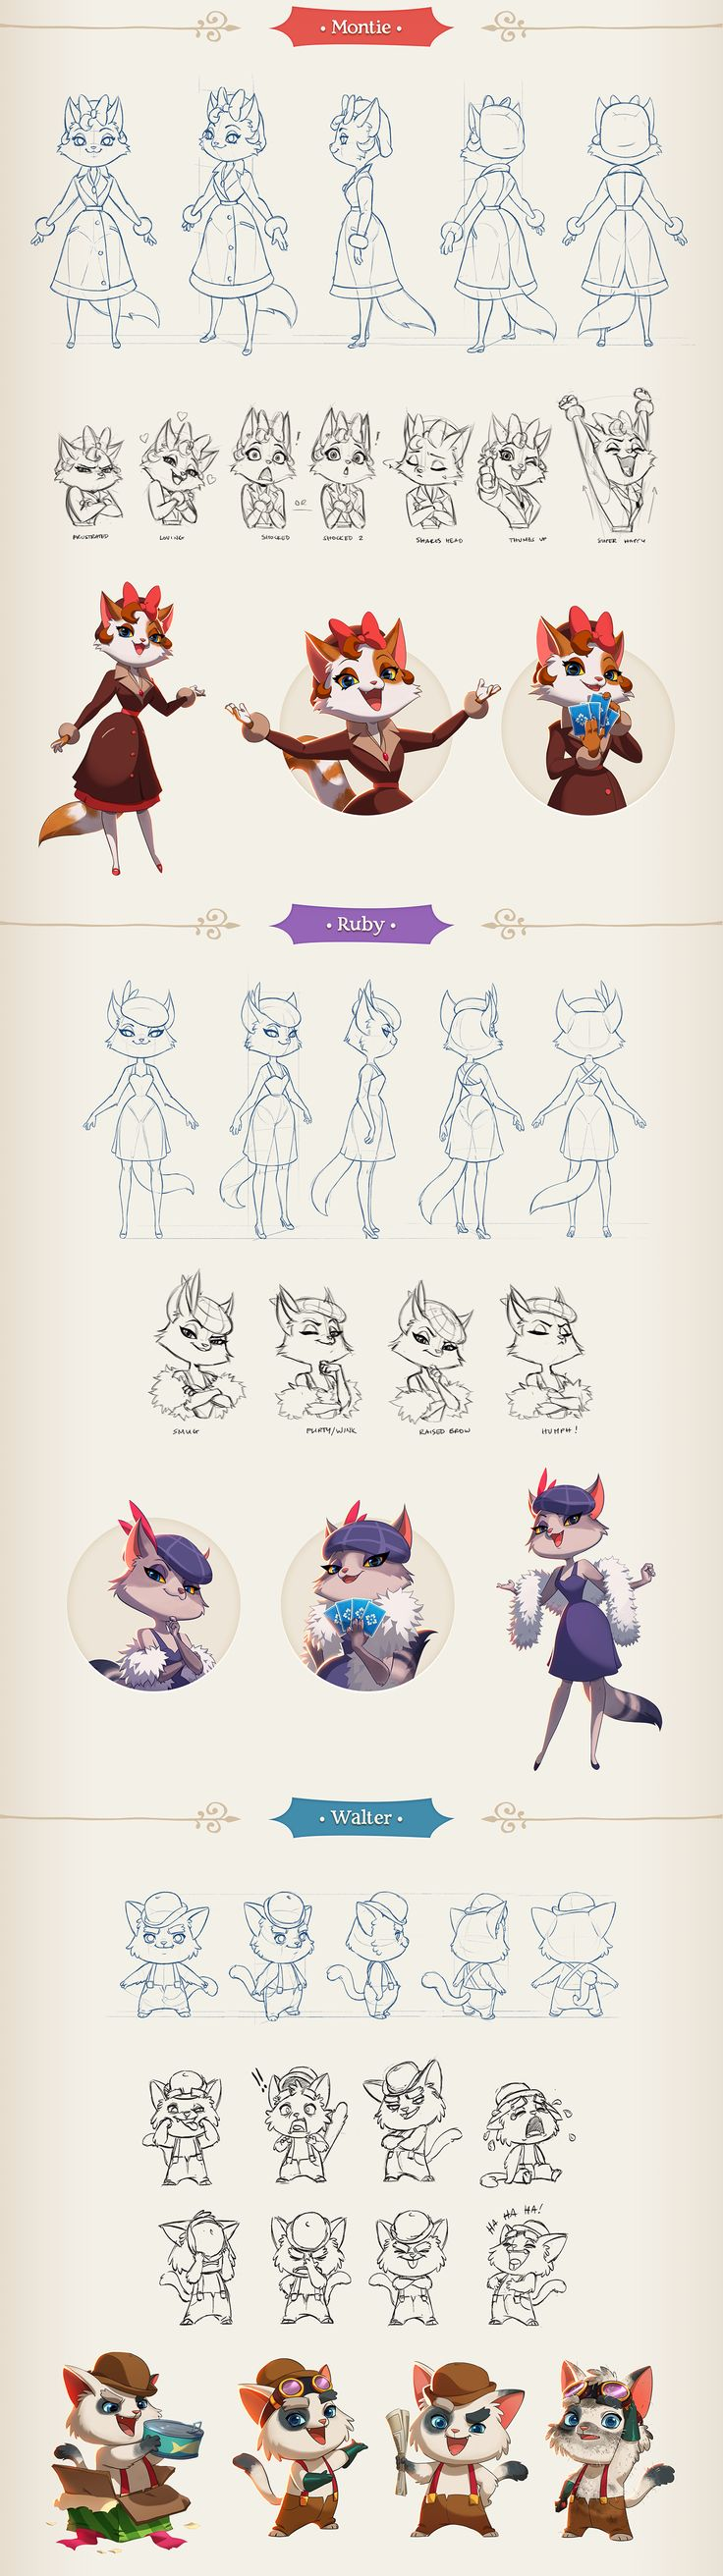 Shuffle Cats - The Characters on Behance